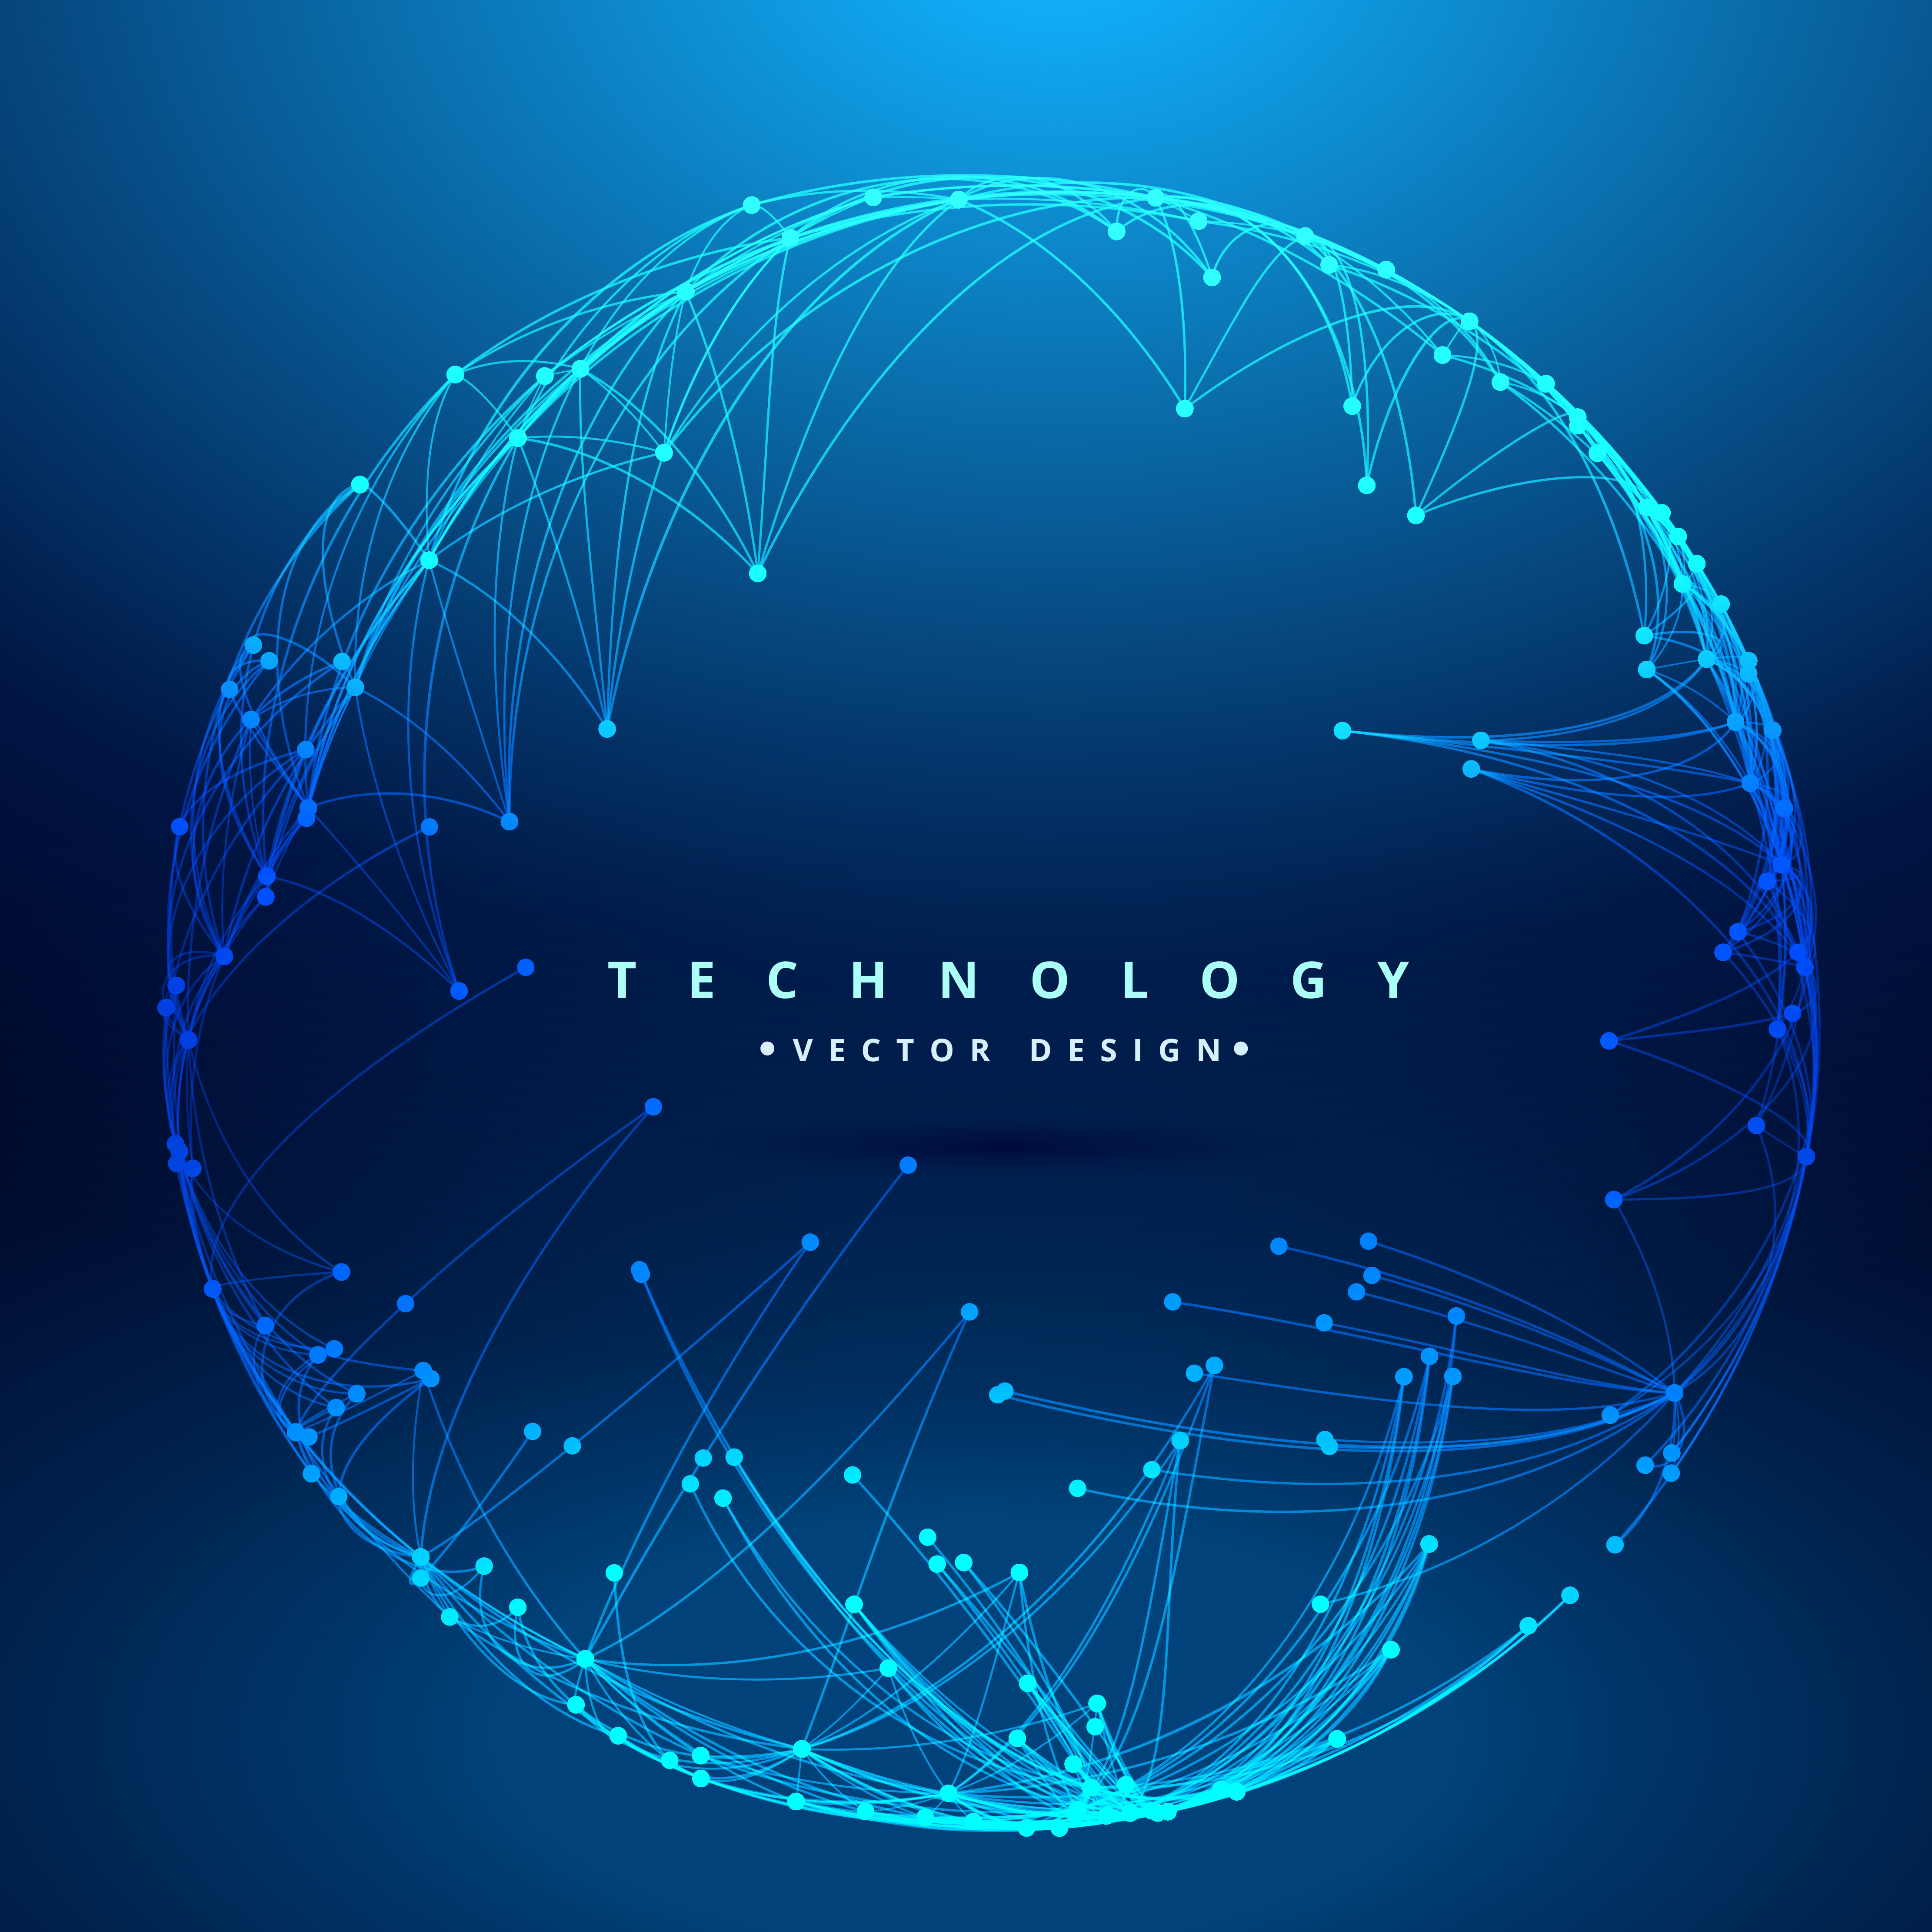 Technology Background With Circular Mesh Download Free